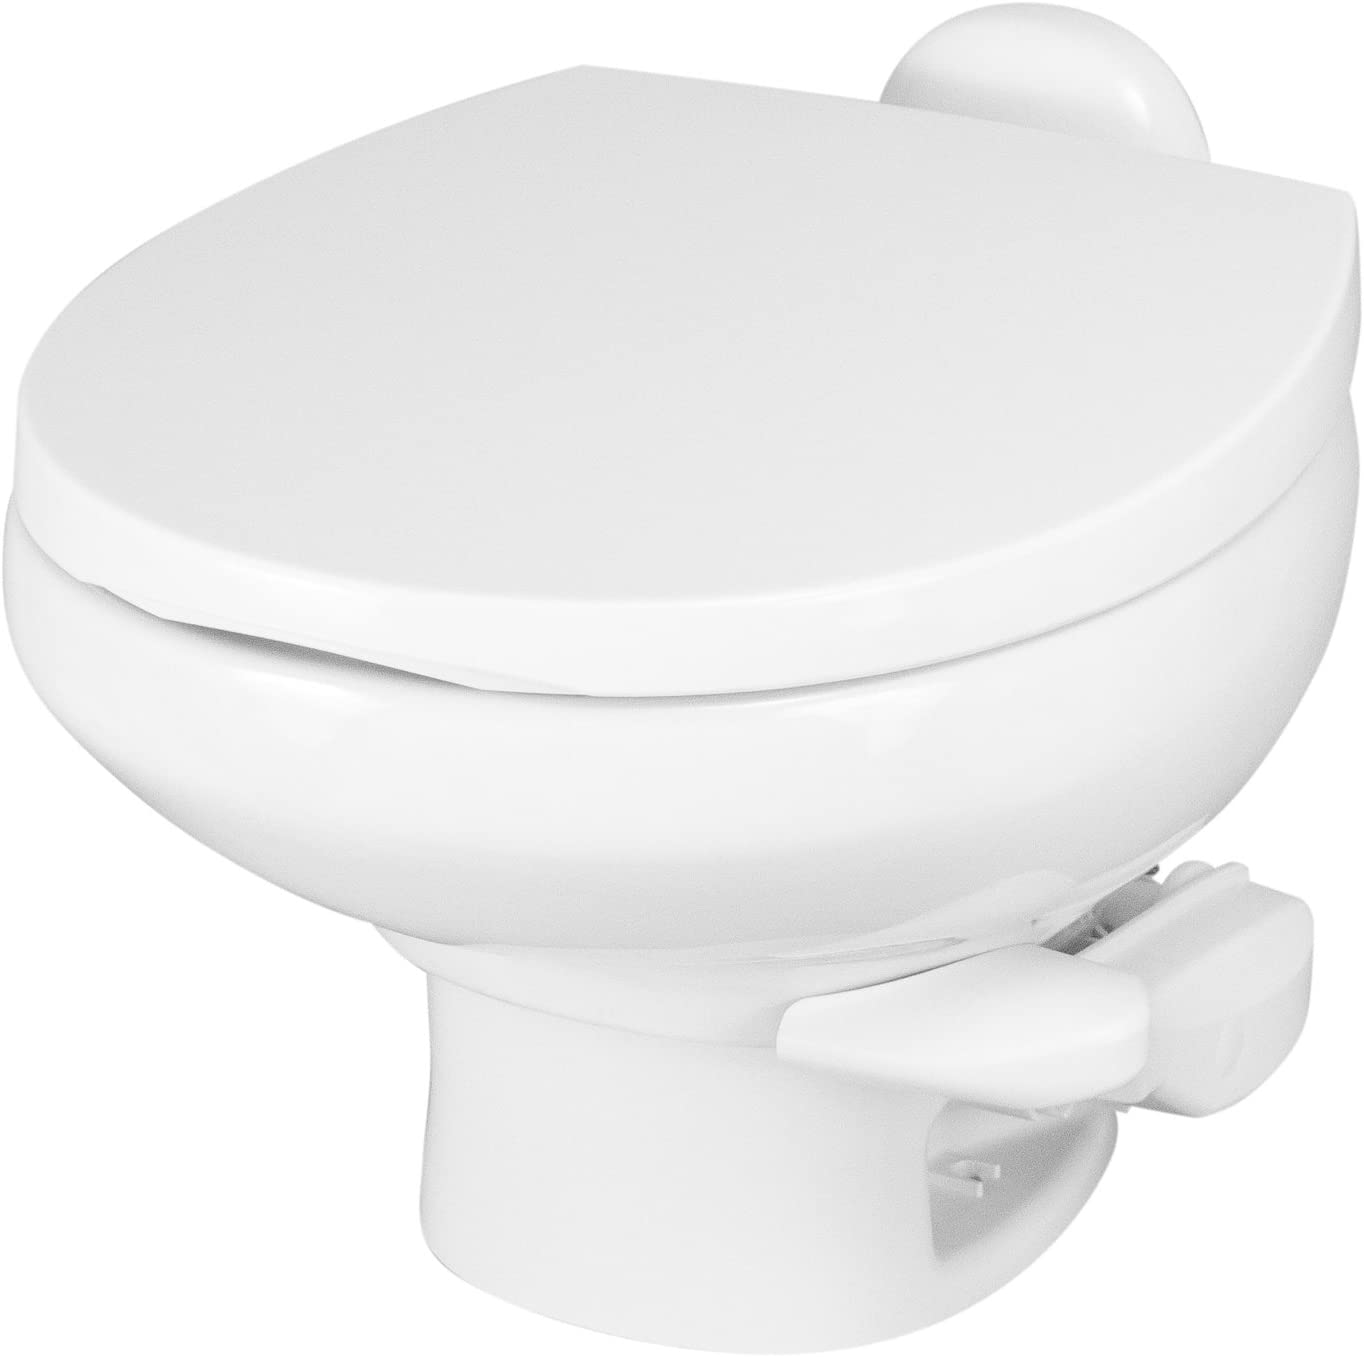 Best rv toilets: Thetford 42058 Aqua-Magic Style II RV Toilet